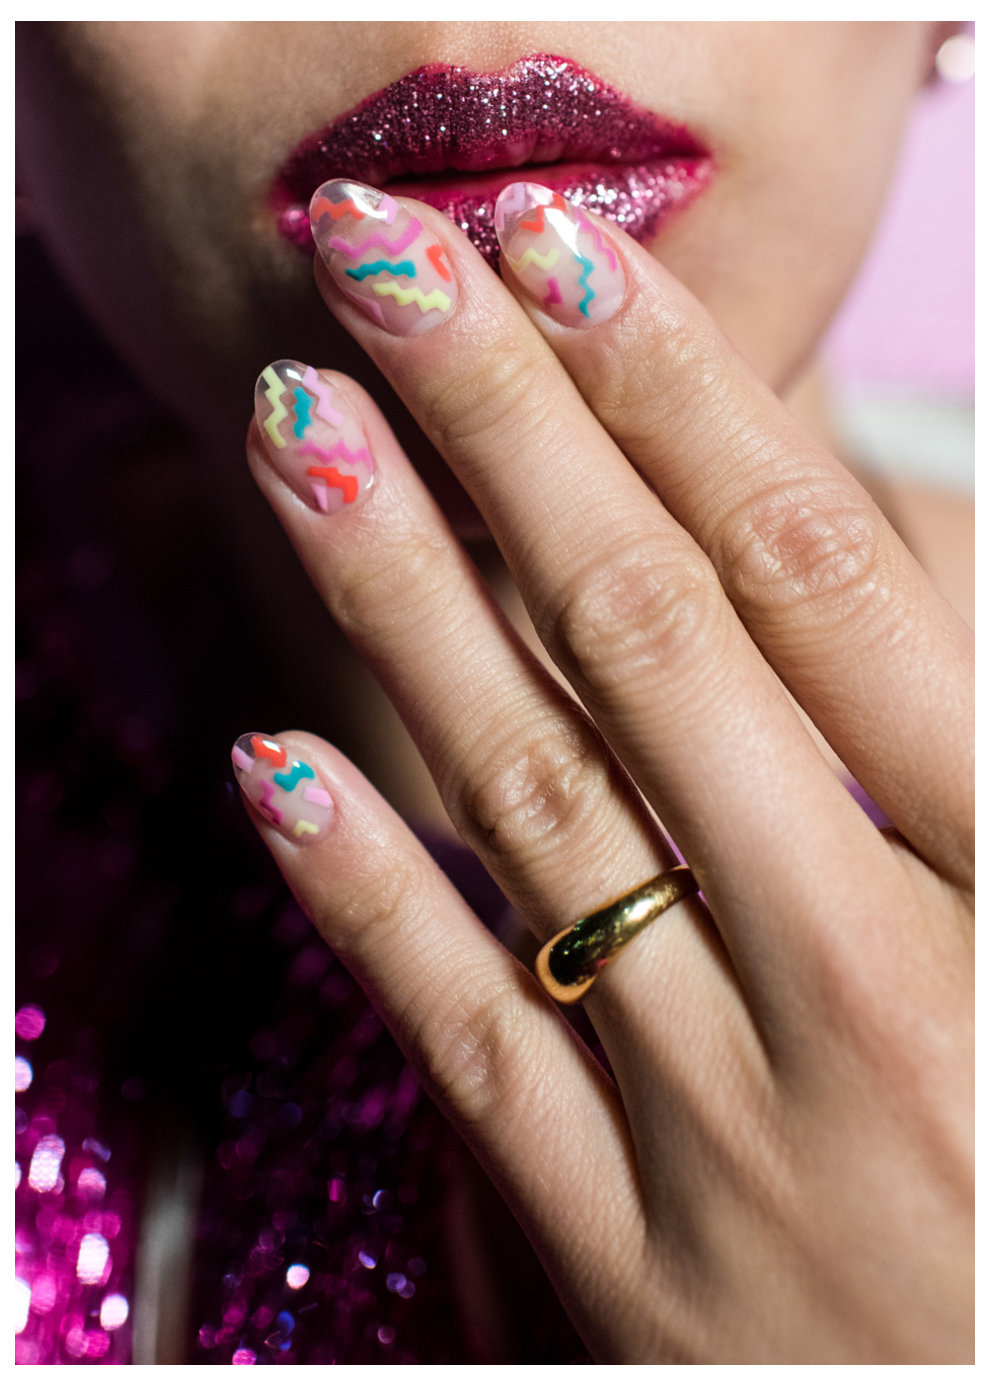 Tokyo Nail Art Running on the Rainbow Bridge